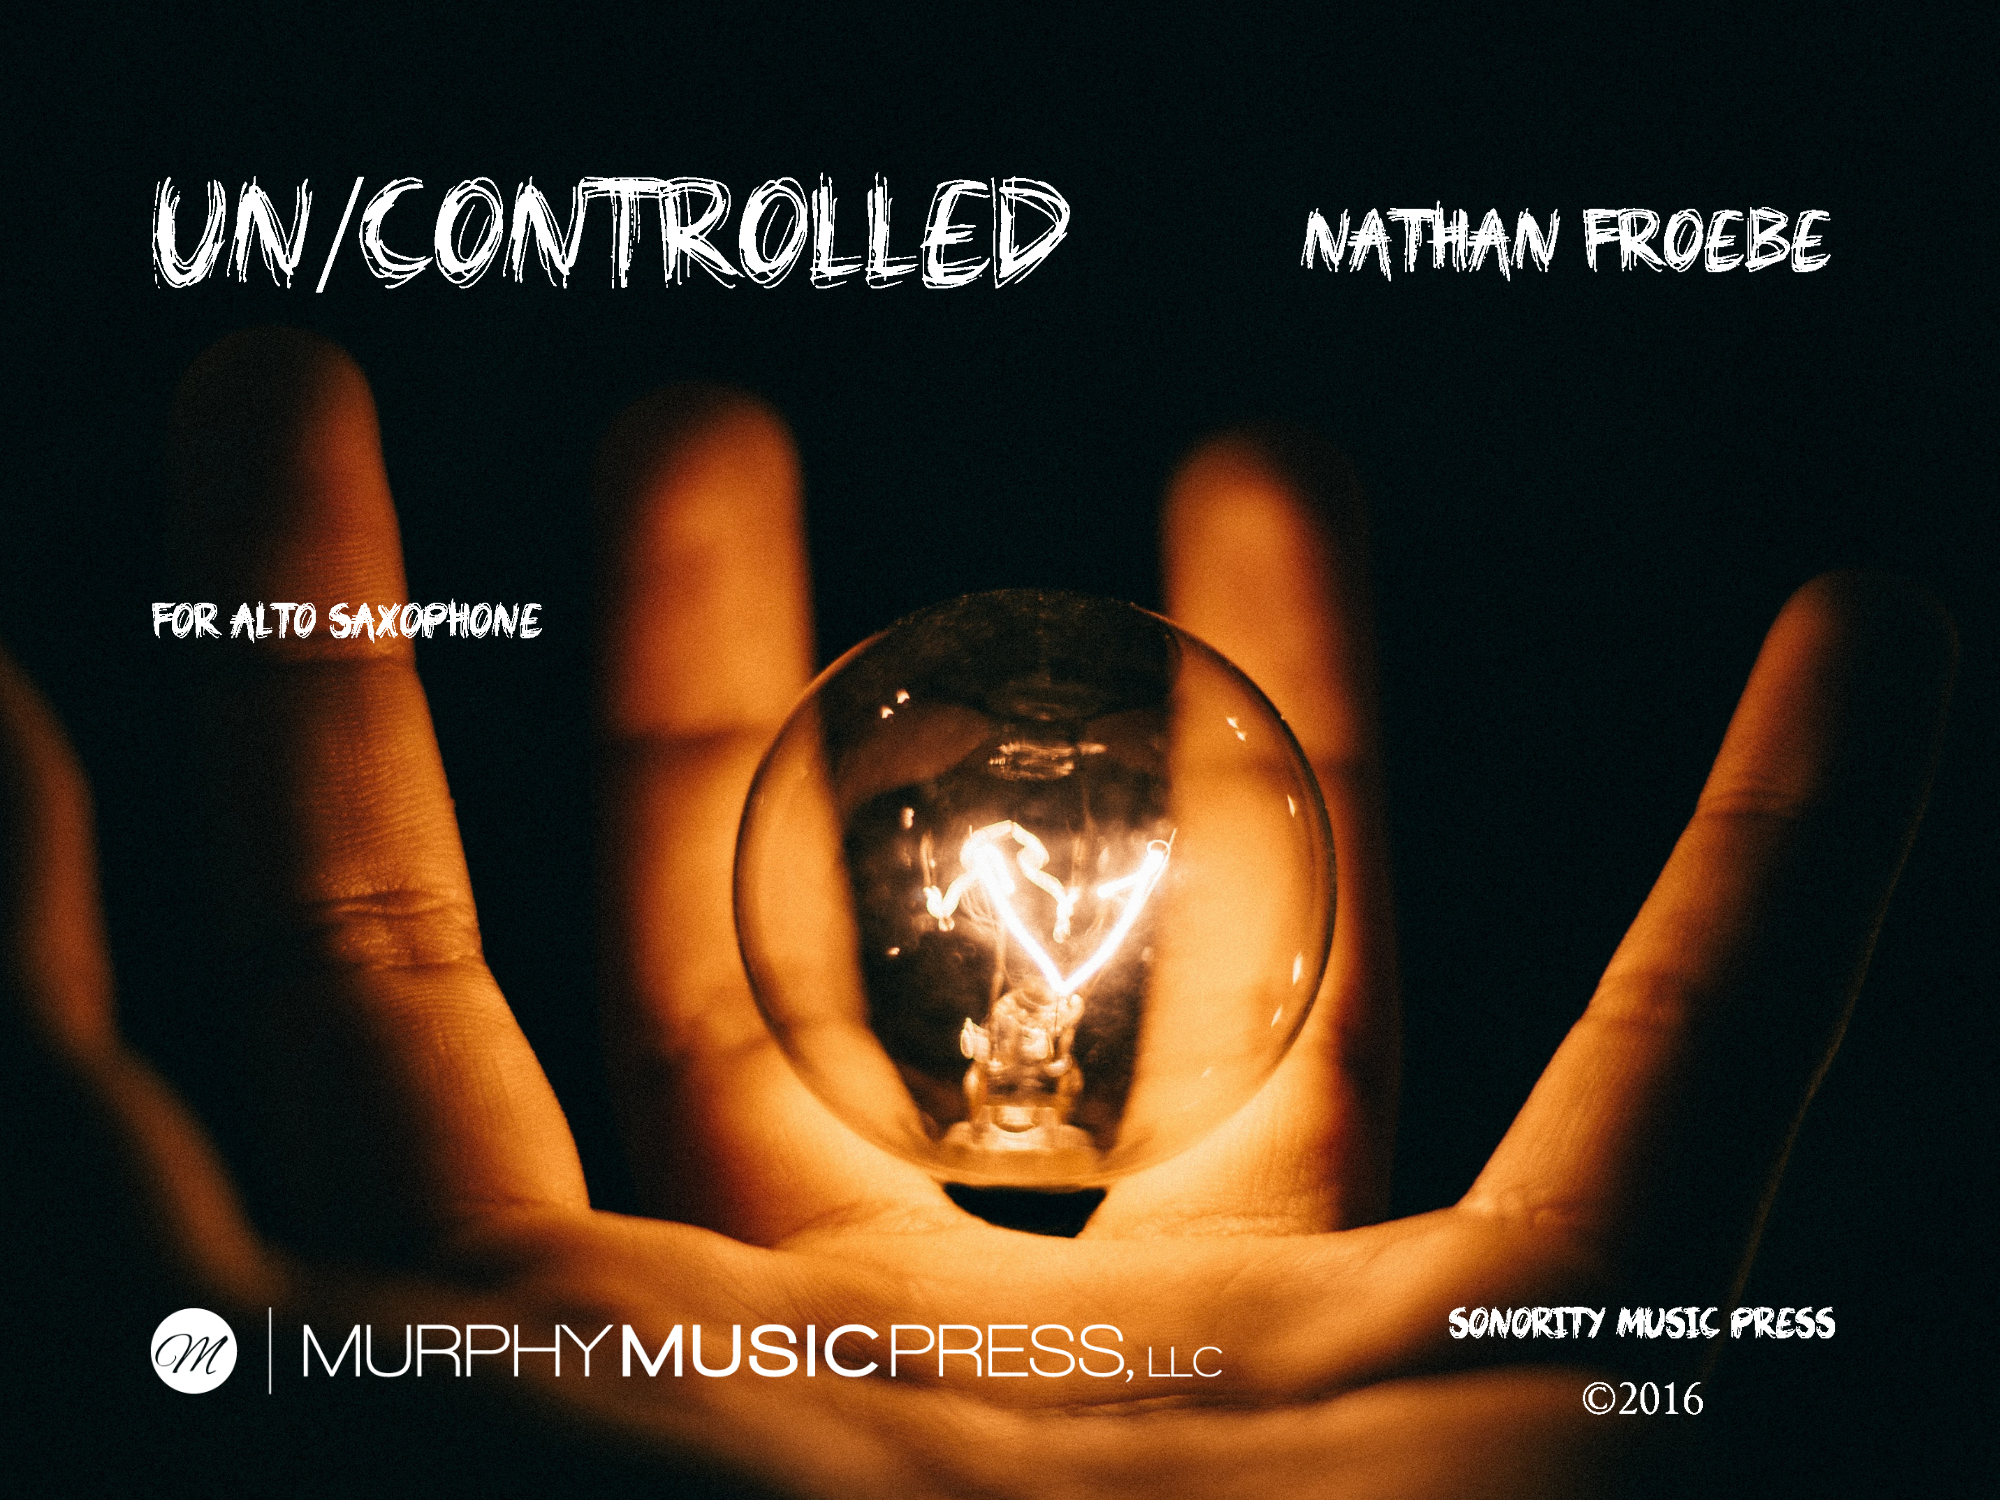 Un/Controlled  by Nathan Froebe